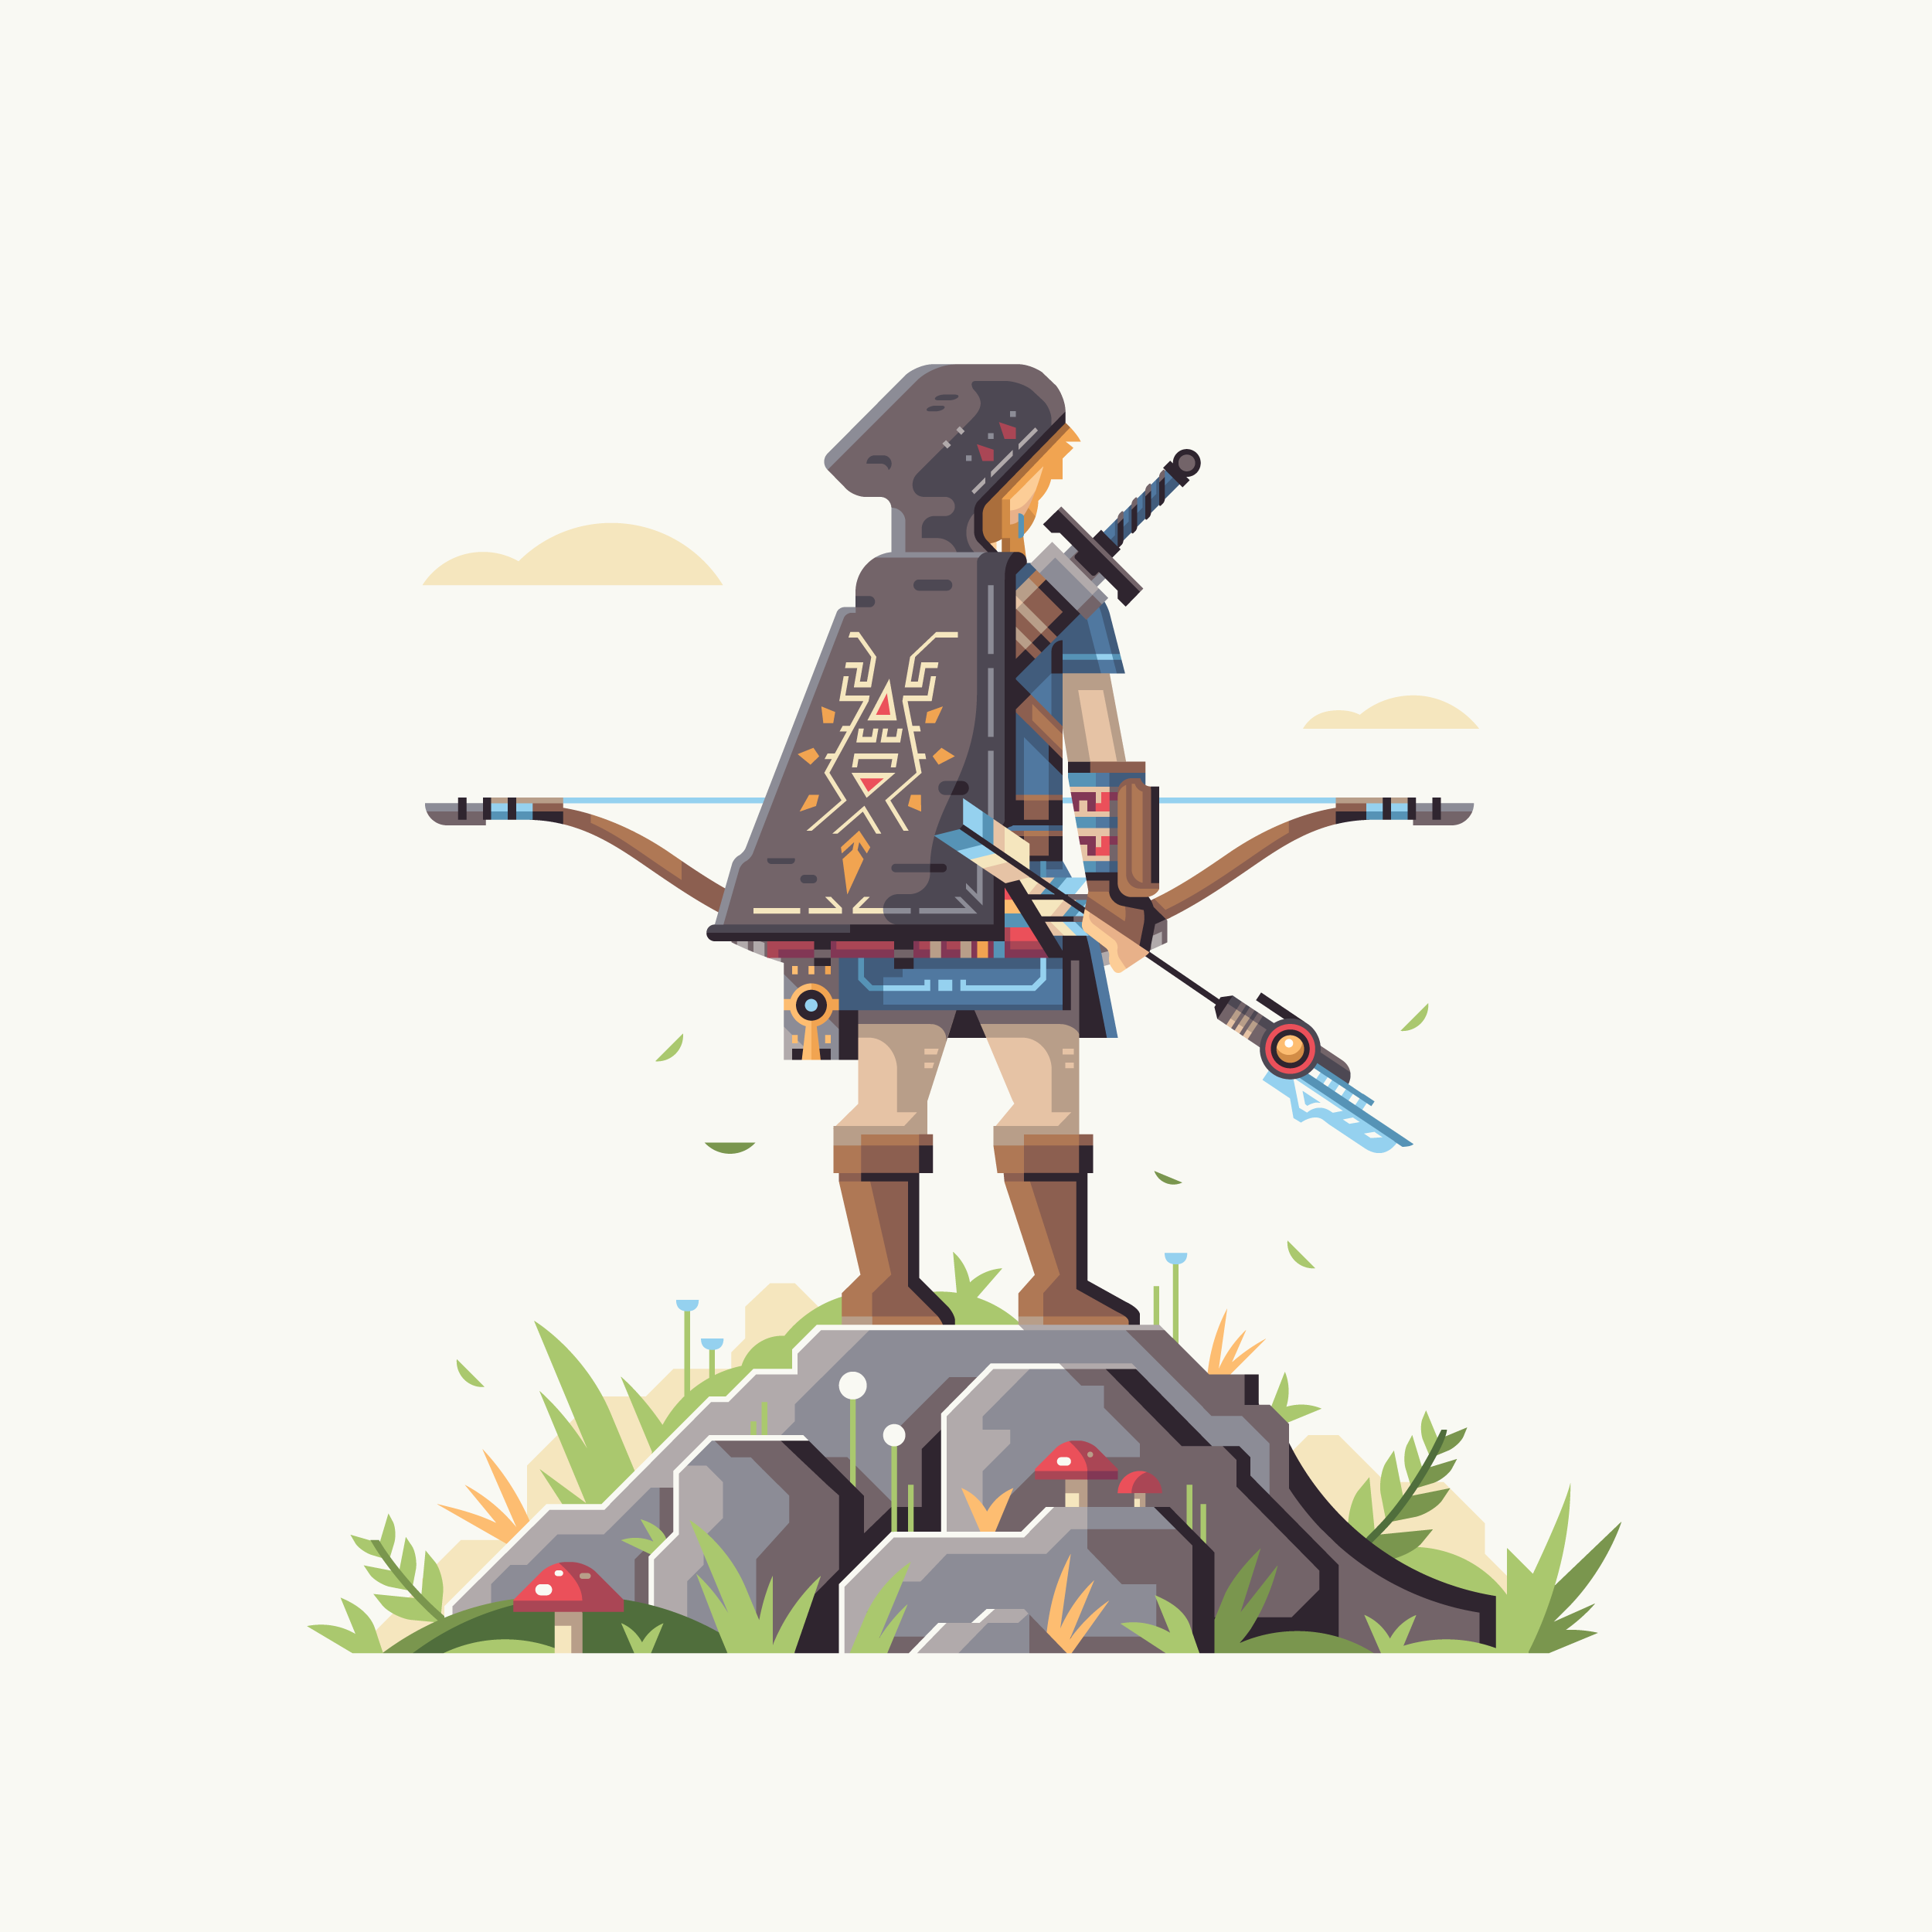 Wild series by Matt Anderson. Inspired by Zelda Breath of the Wild. Hunter of the Wild (Link).